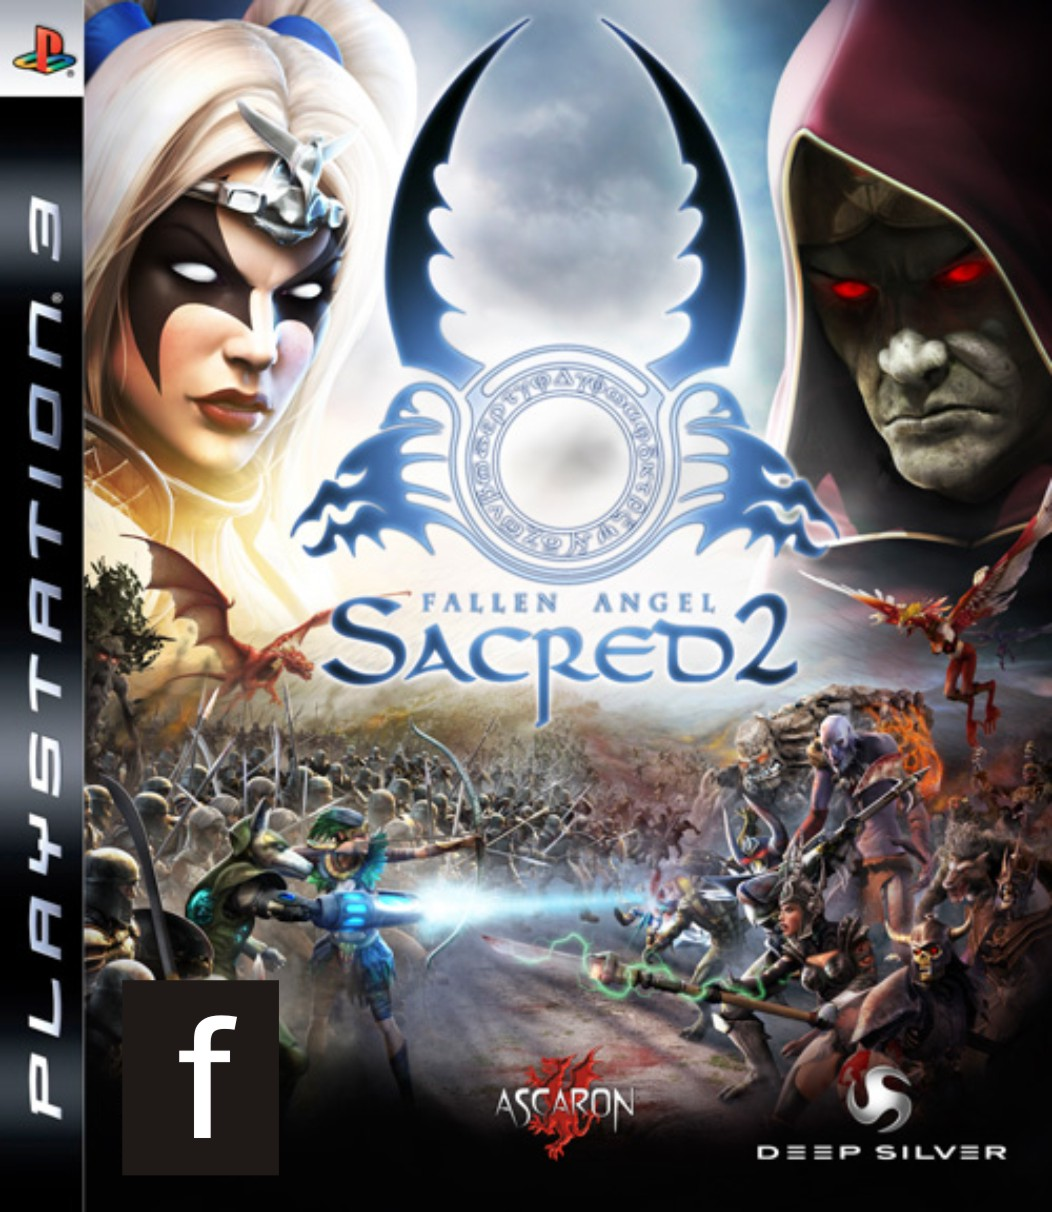 Sacred 2 Fallen Angel (Eur) PS3 ISO Games - Free Download PC